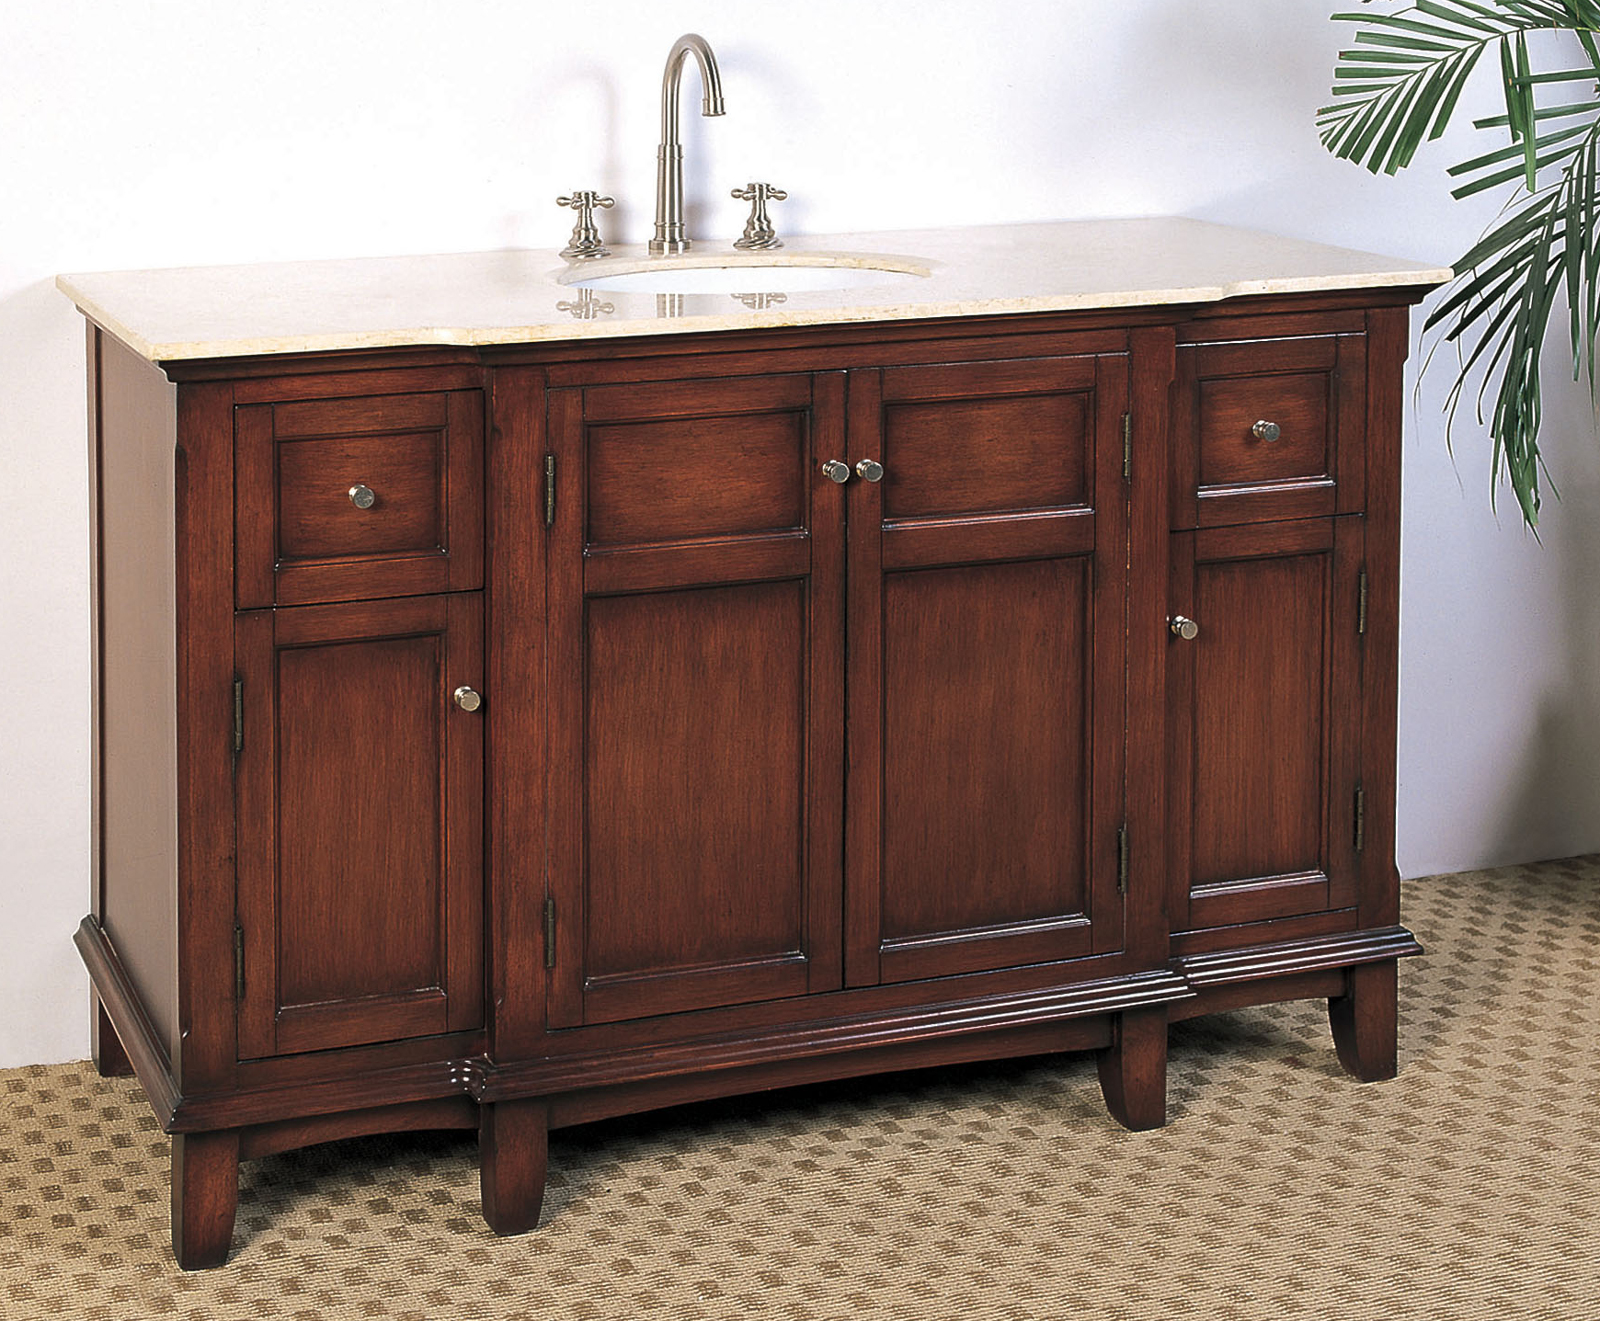 53 inch single sink bathroom vanity in bathroom vanities - 72 inch single sink bathroom vanity ...